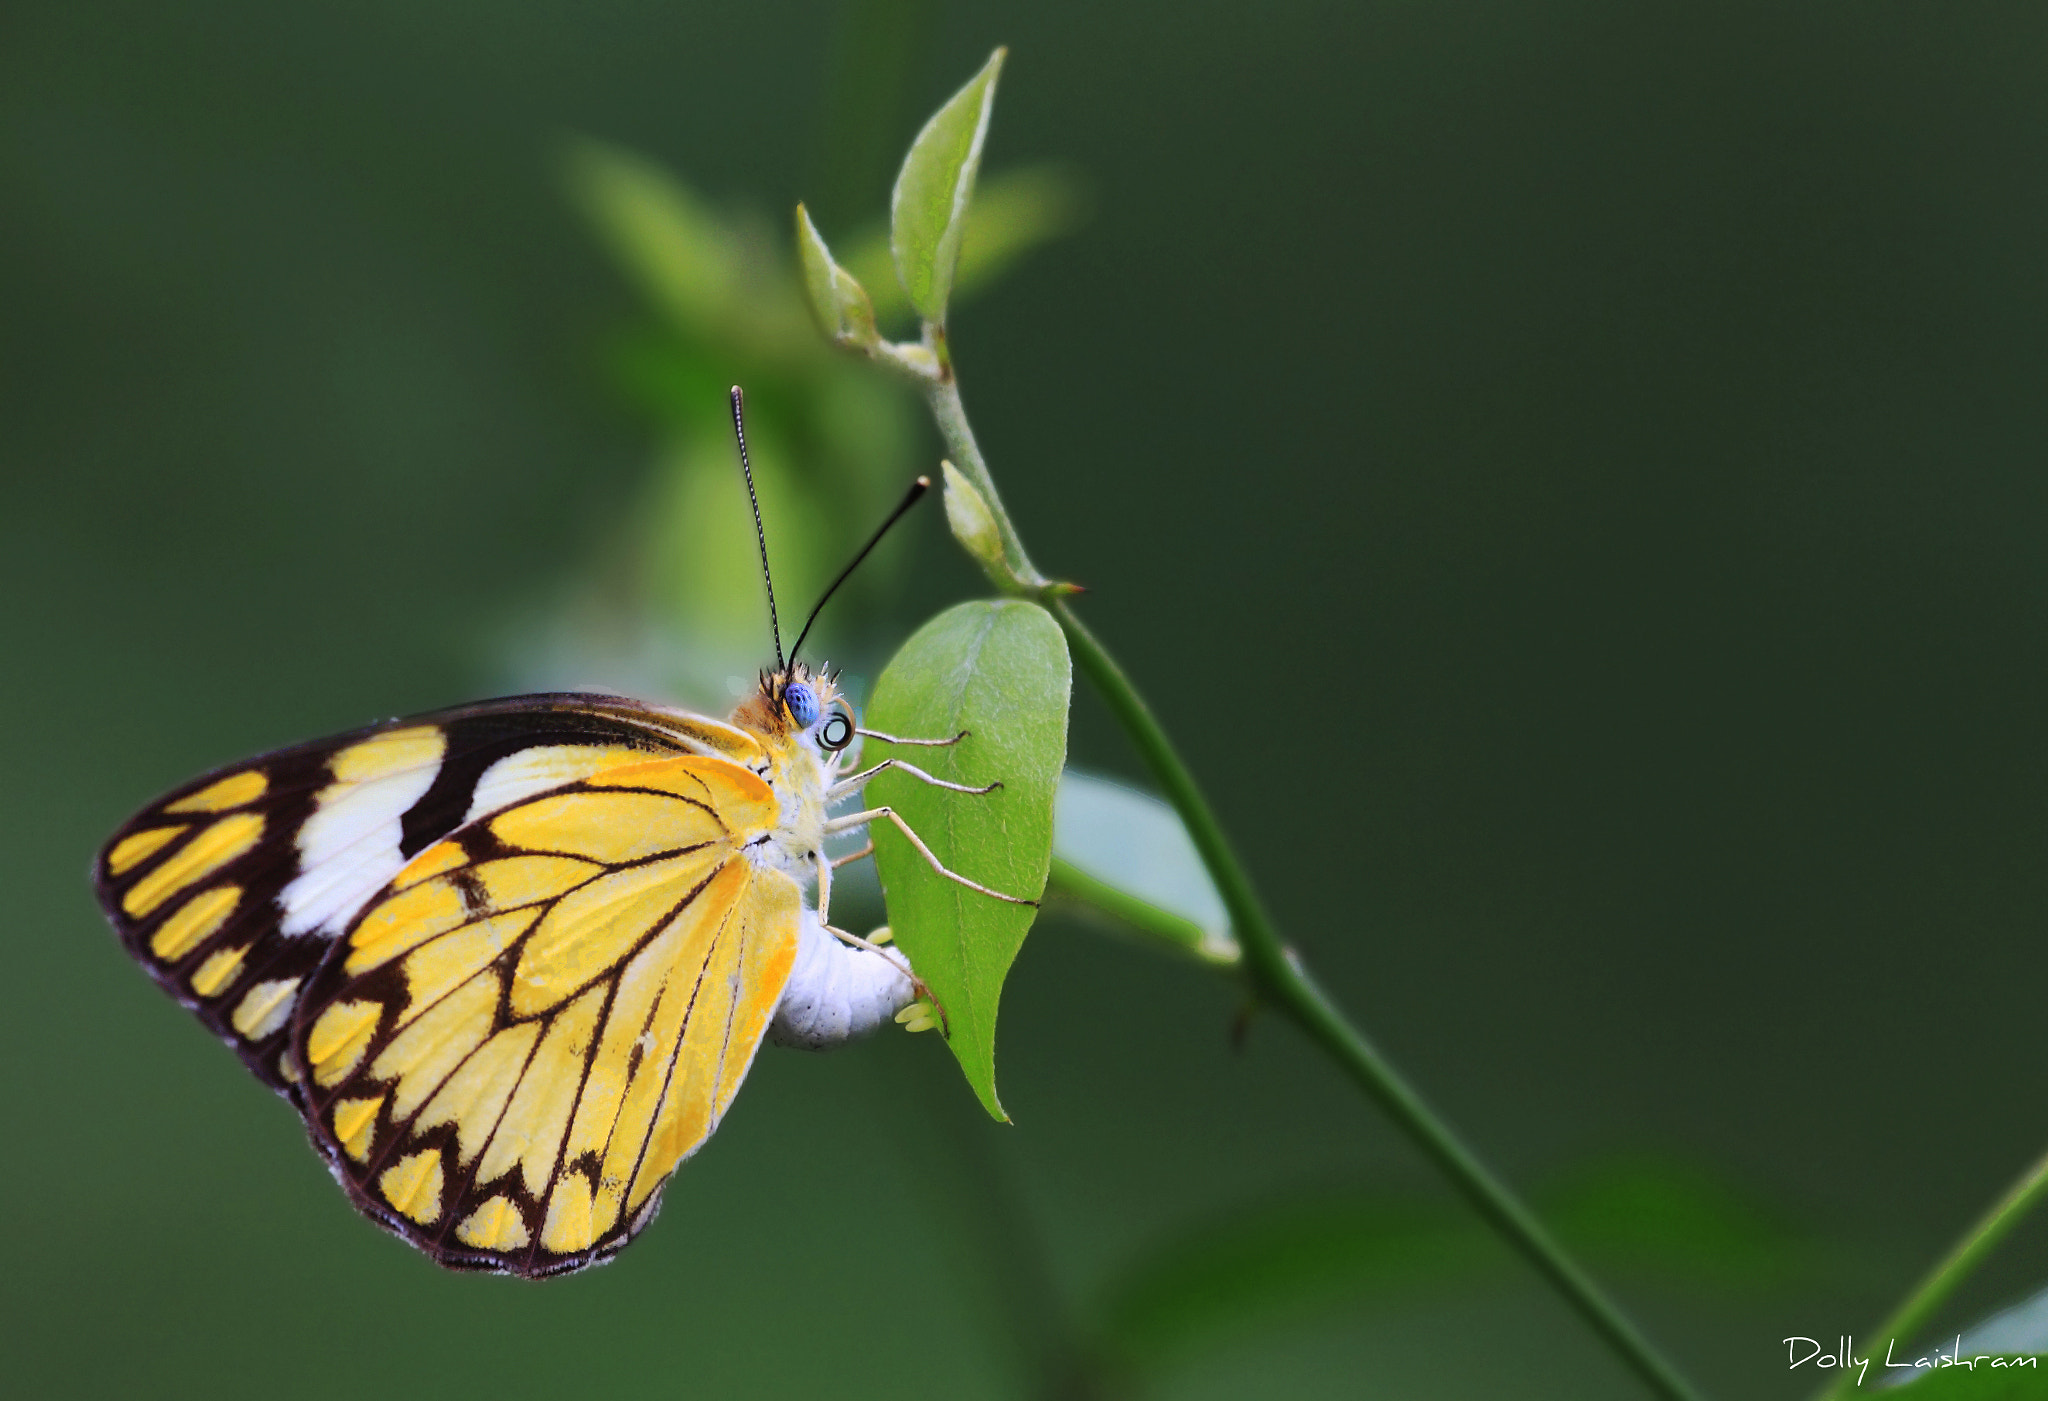 Photograph Butterfly, Nature, Green by Dolly Bhardwaj on 500px